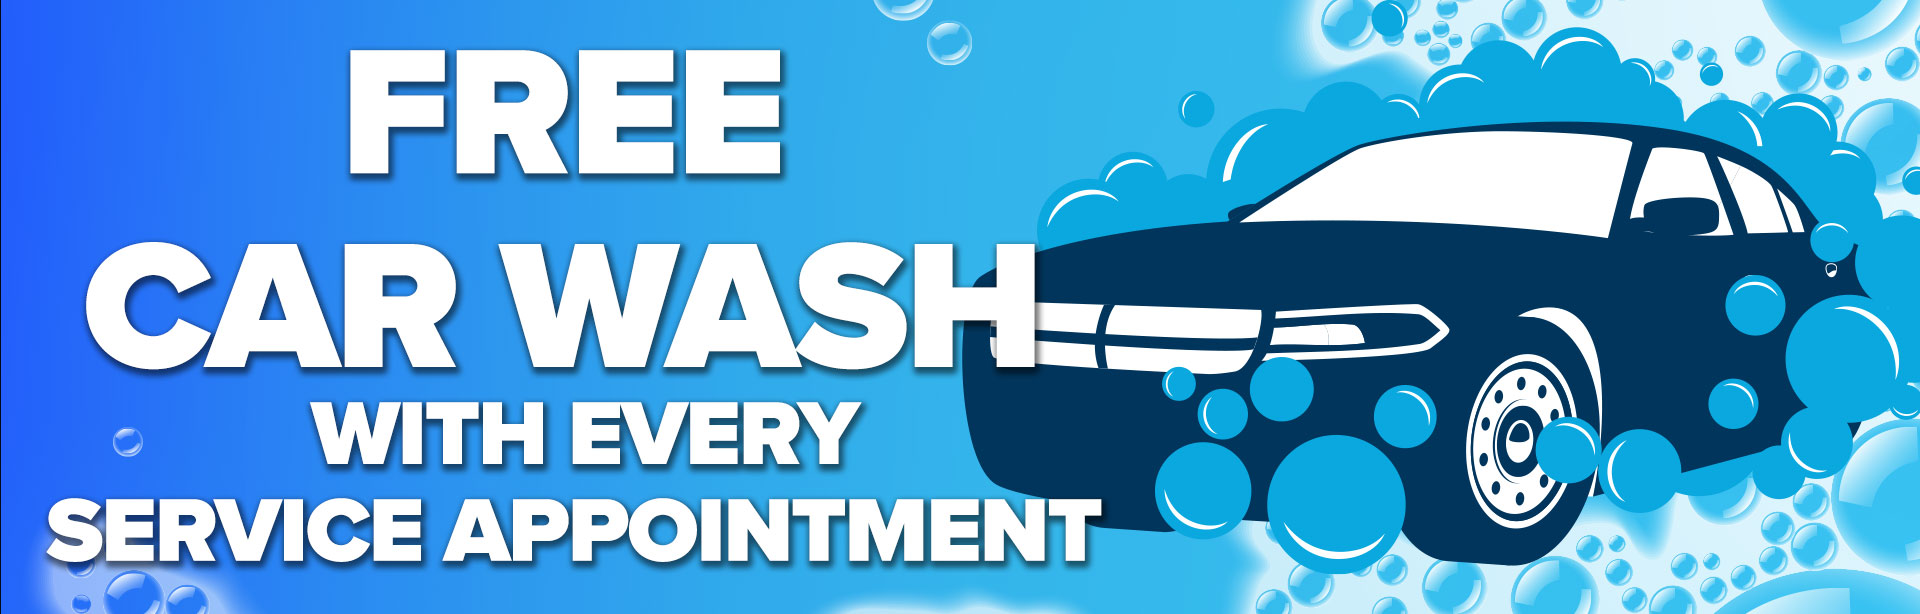 Free car wash with service